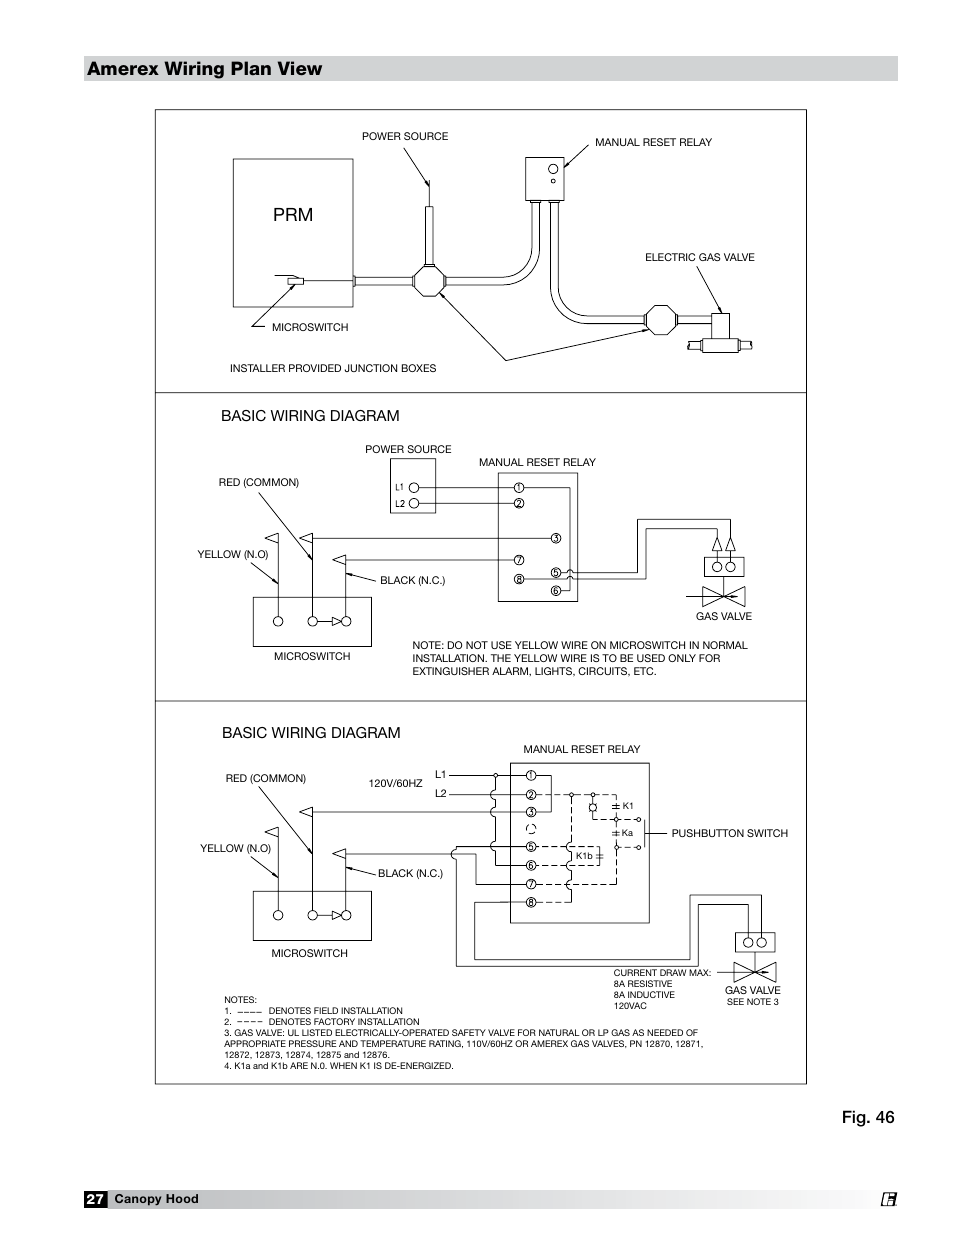 amerex wiring plan view fig 46 basic wiring diagram greenheck amerex wiring plan view fig 46 basic wiring diagram greenheck fan 452413 user manual page 27 40